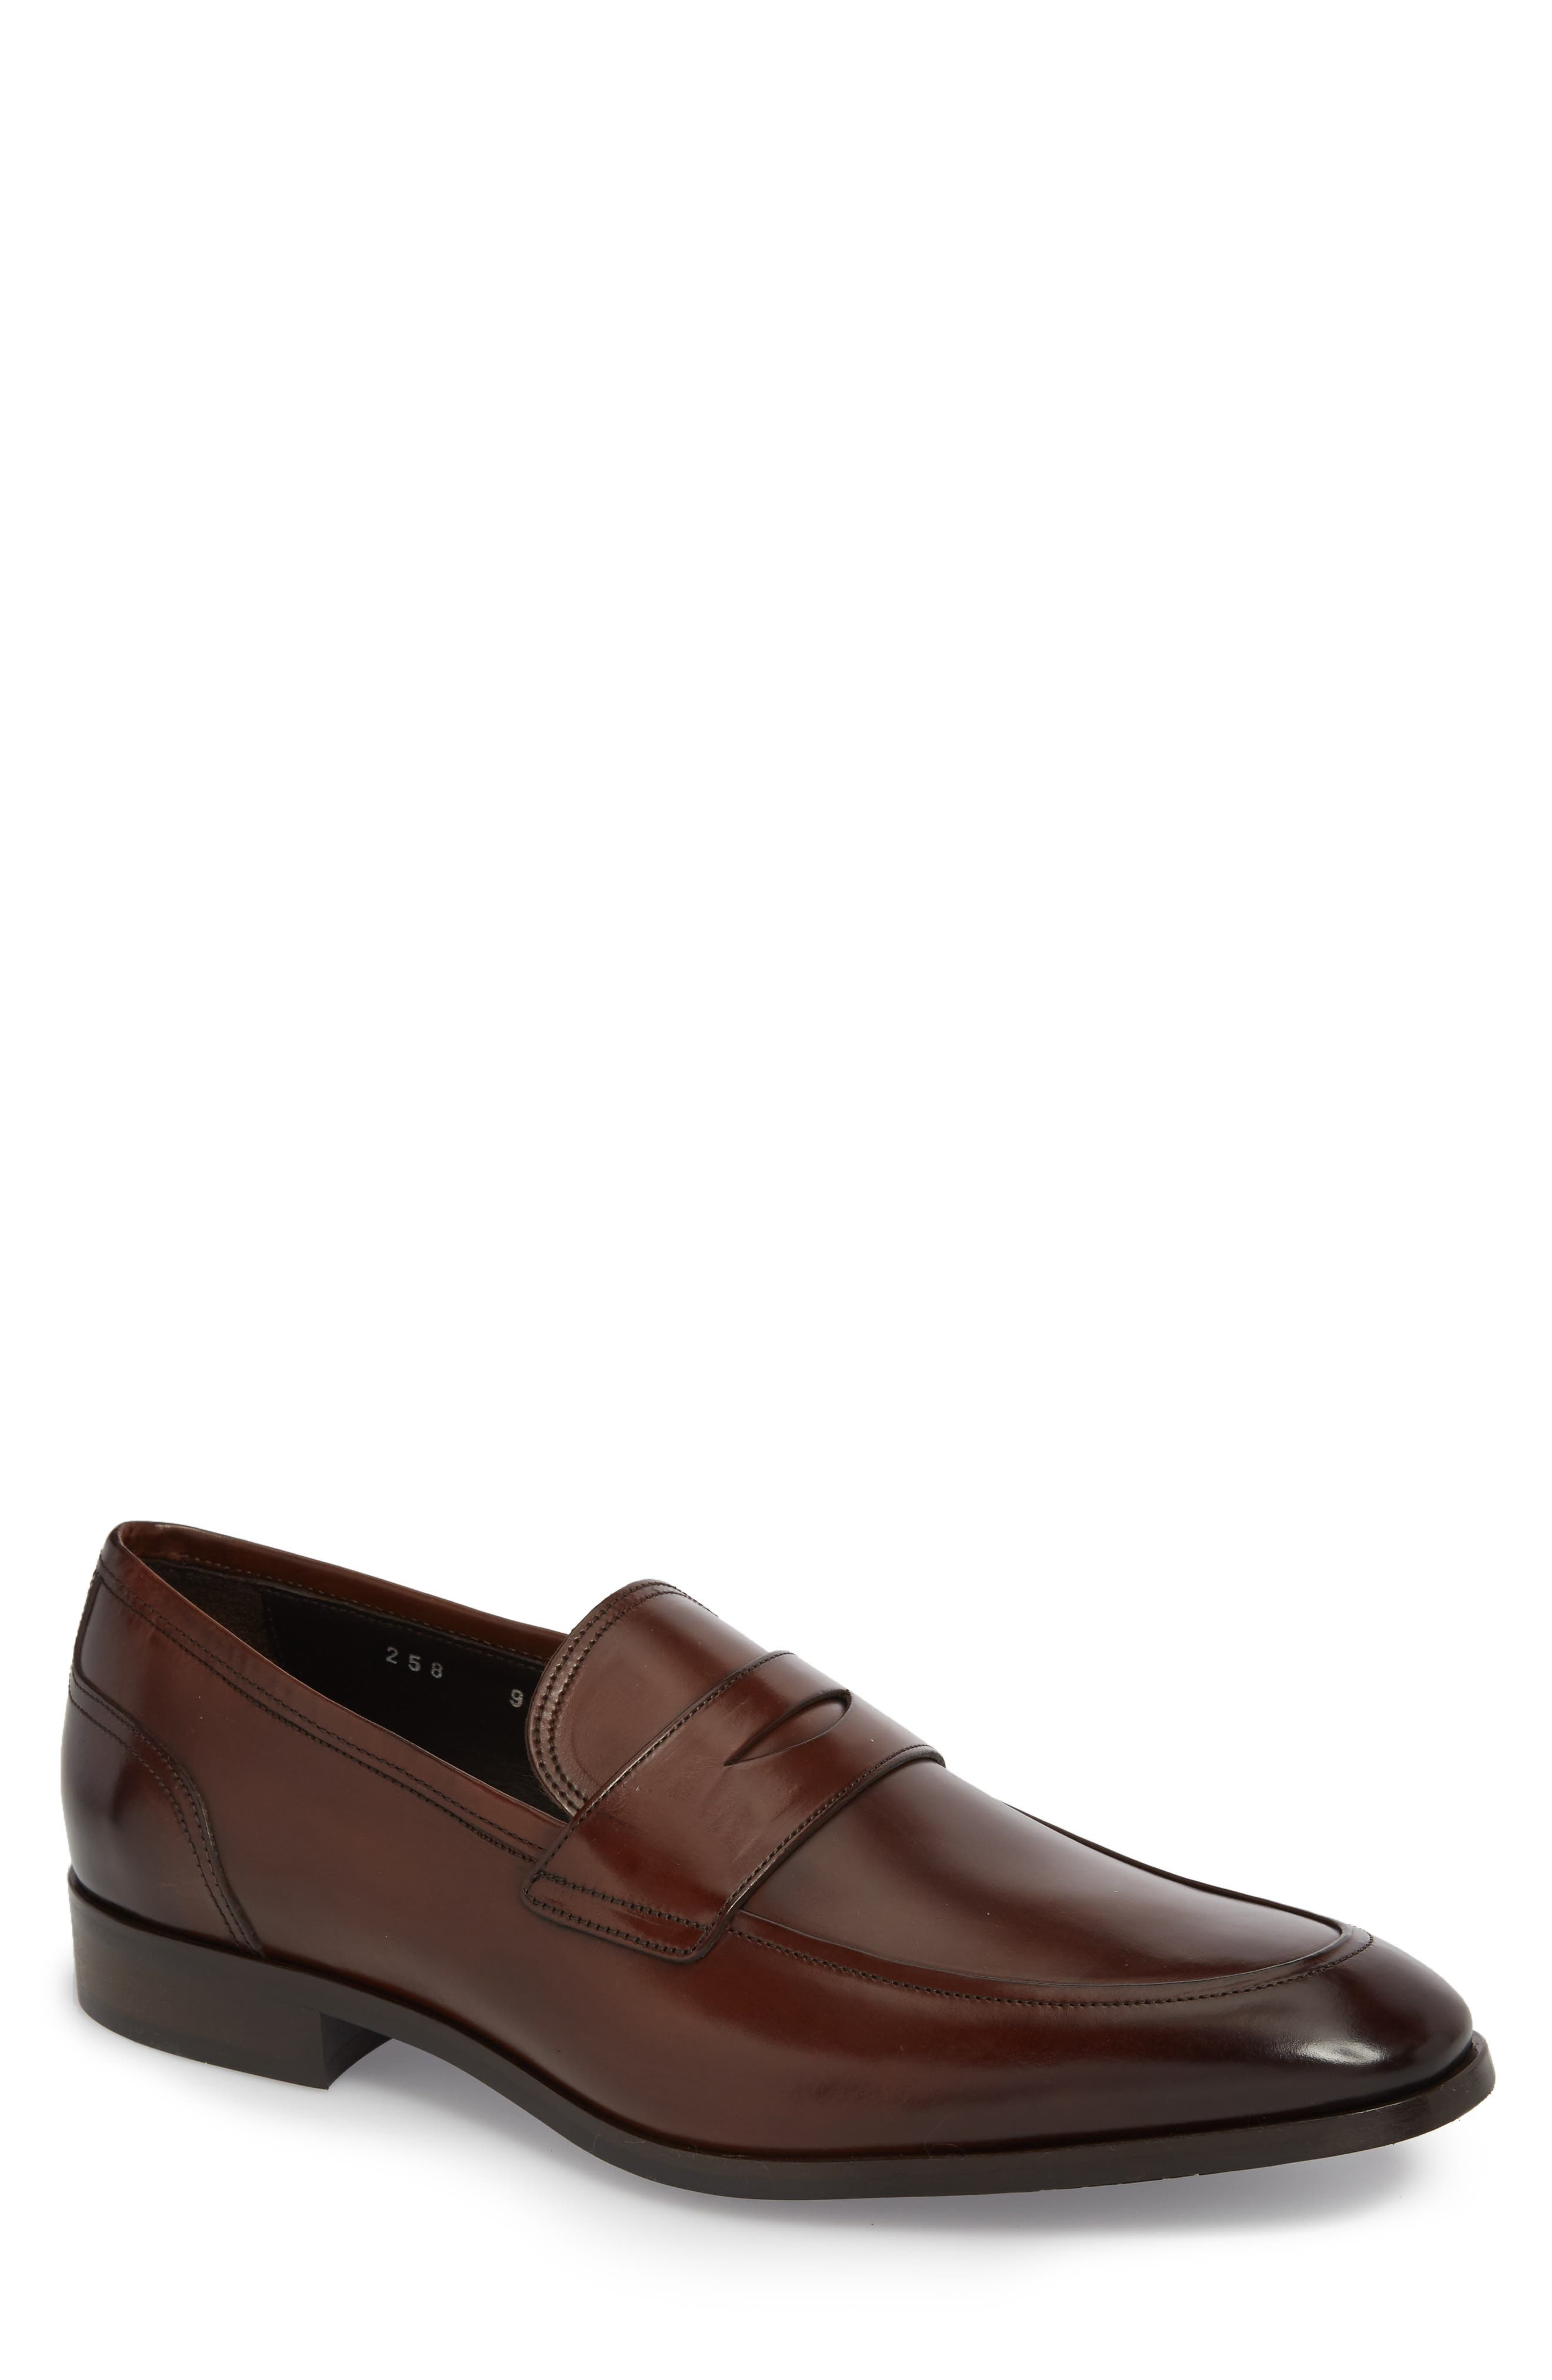 To Boot New York Deane Penny Loafer, Brown